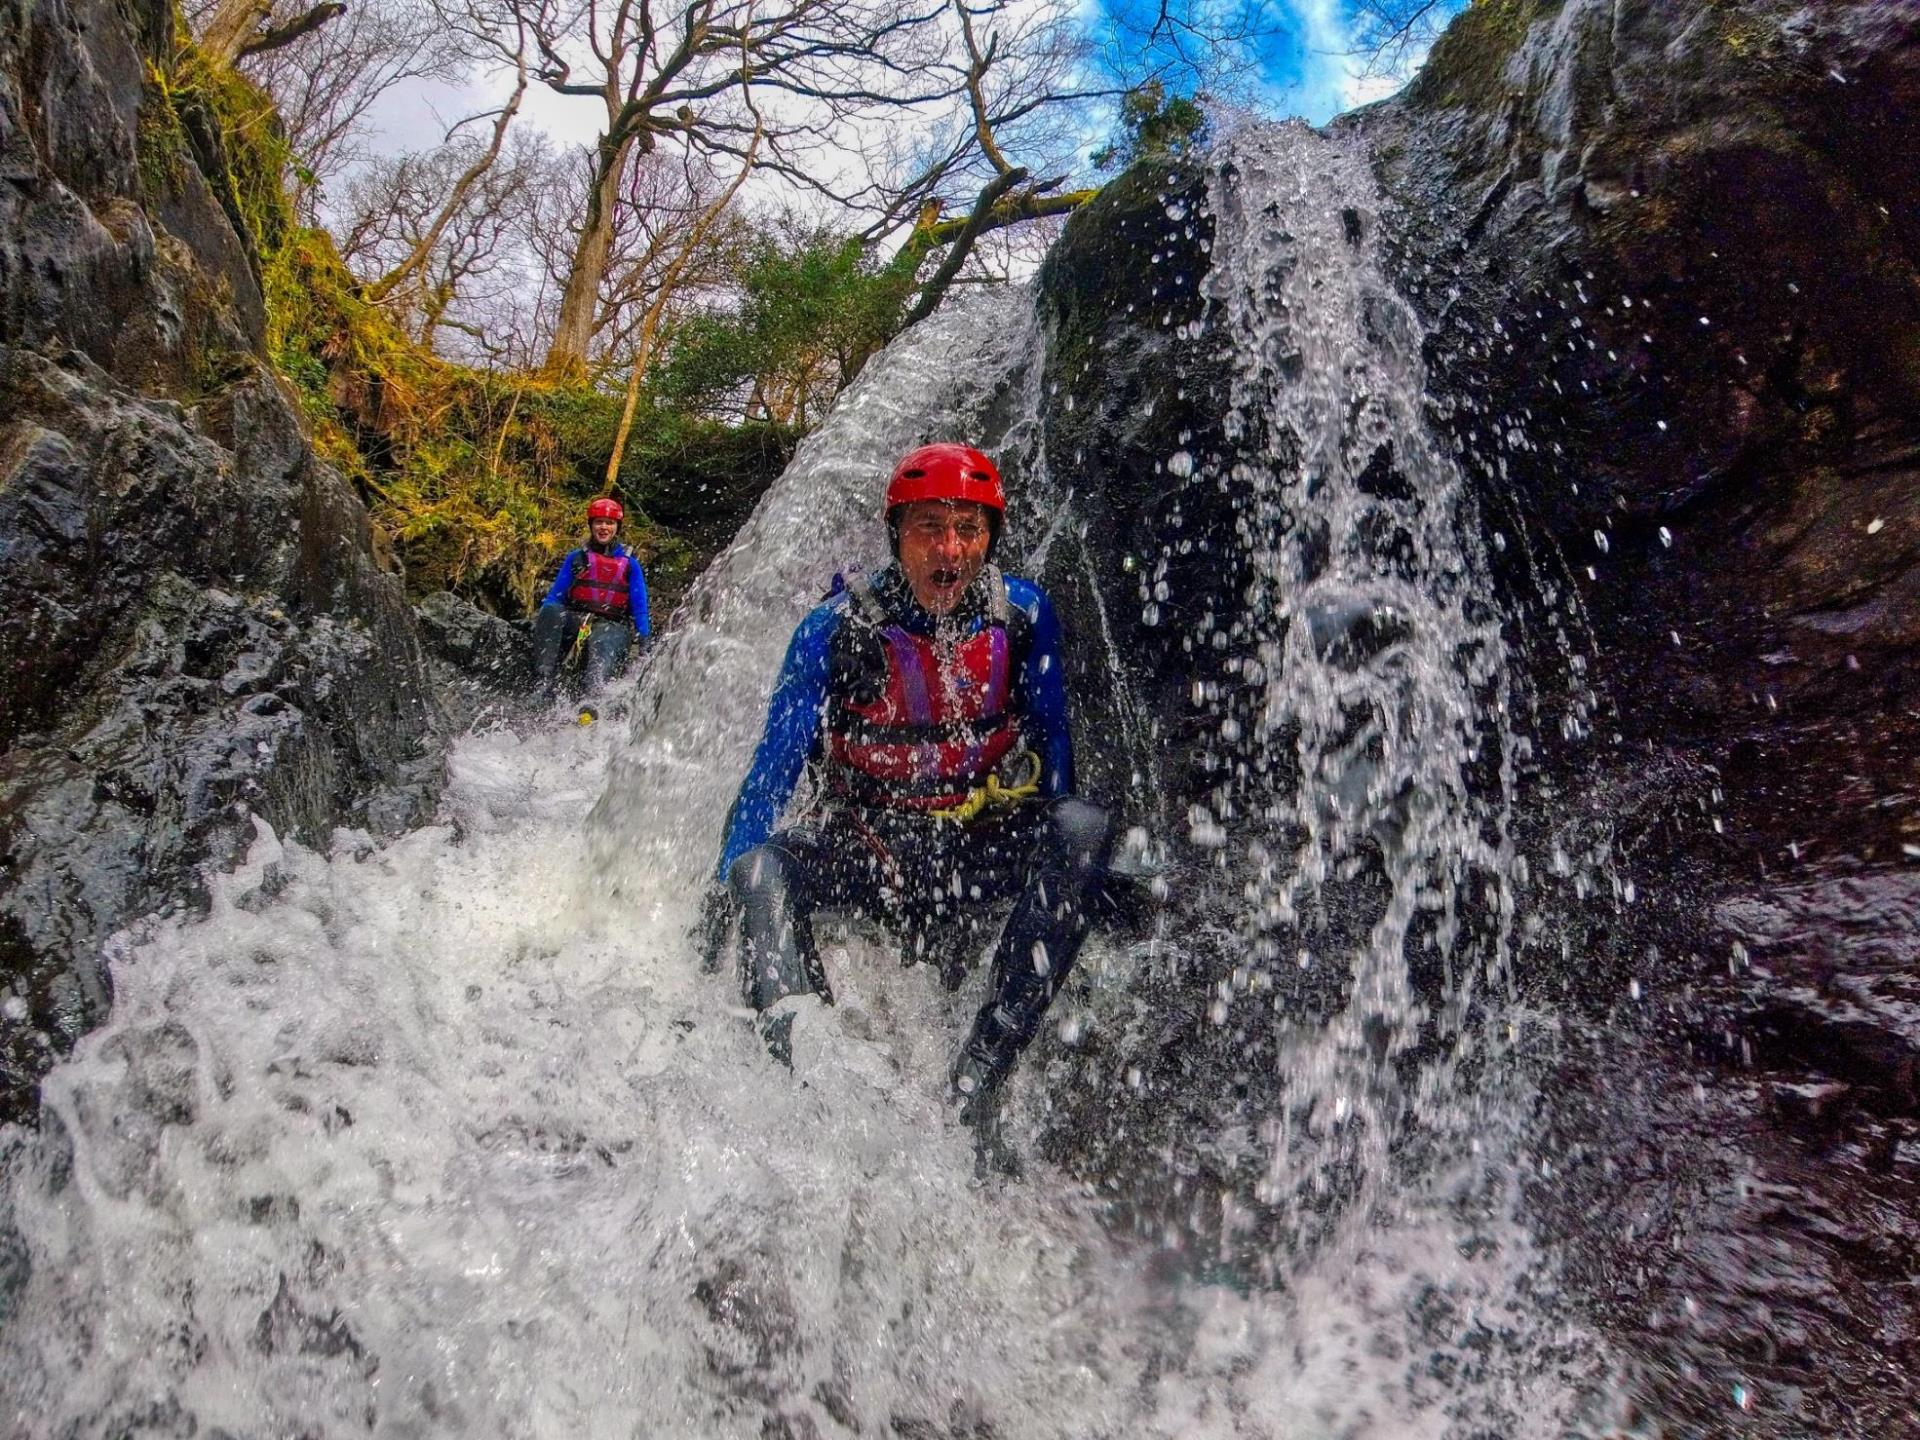 Scrambling through the Prysor gorge